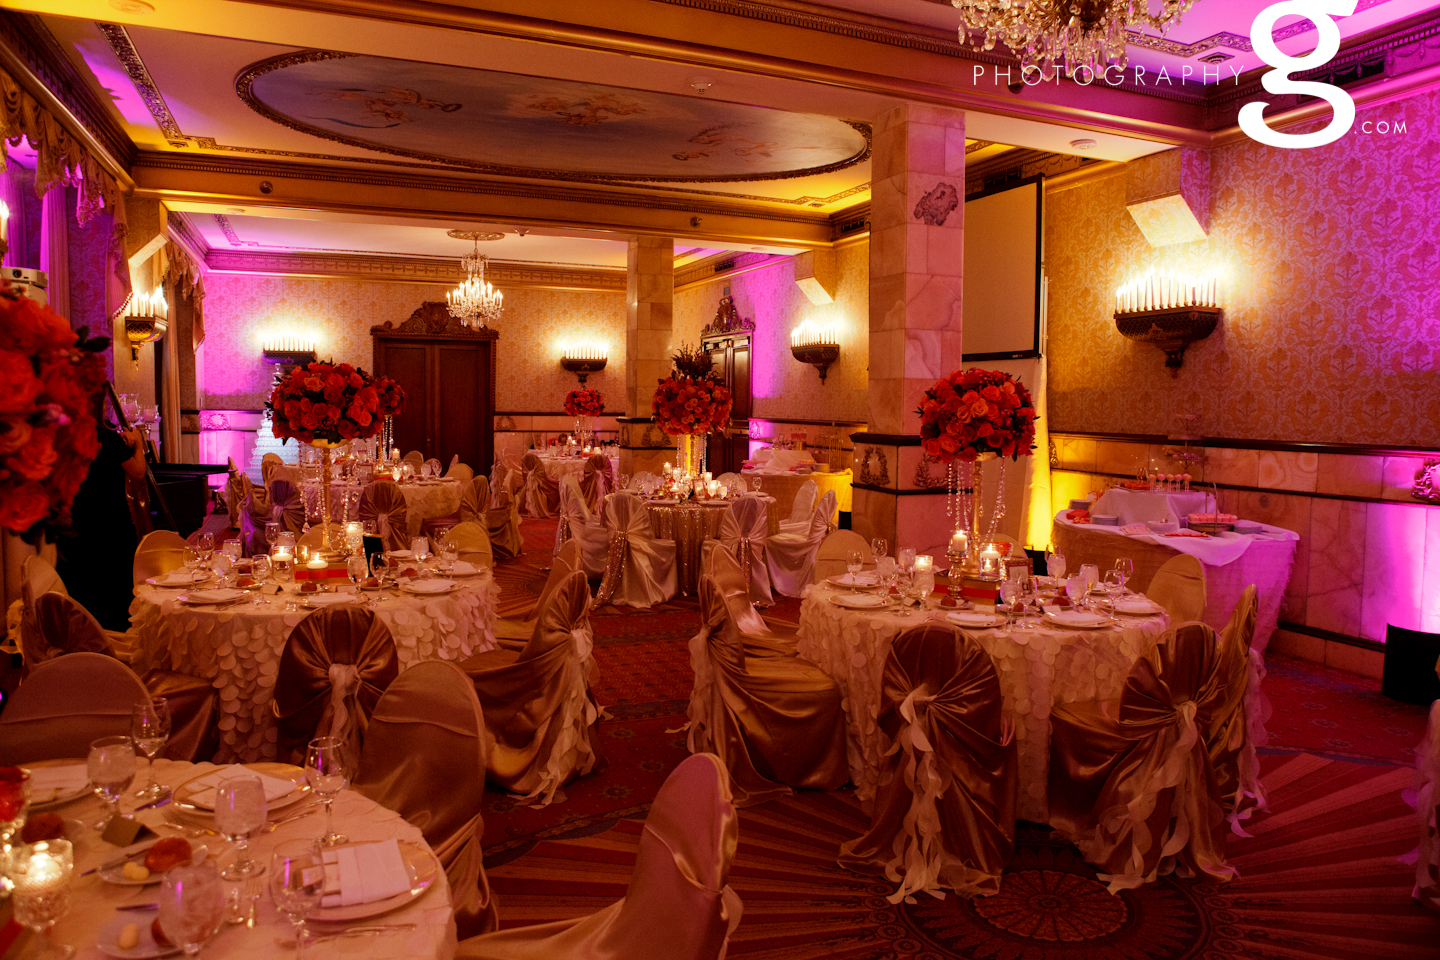 Brown Palace rm, tablescape, linens, florals, lighting pic 16.jpg